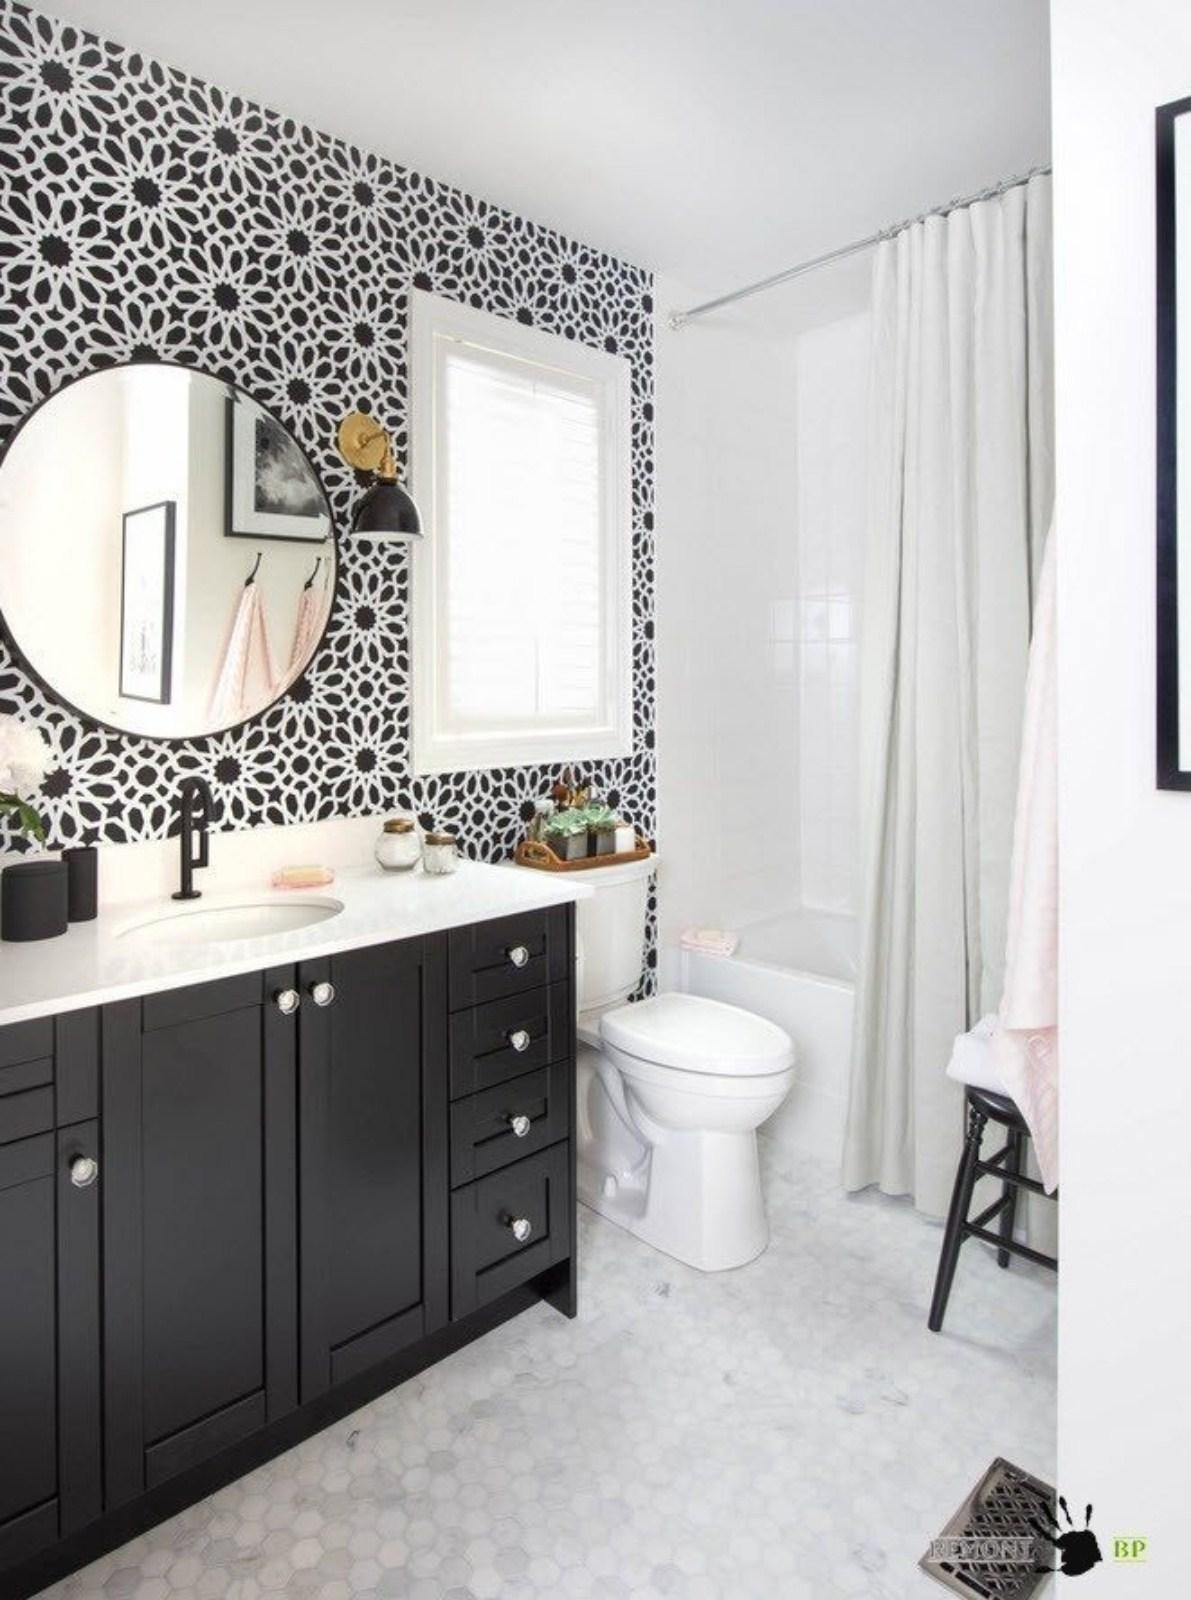 Bathroom Cabinets : Modern Round Bathroom Mirror With Black Throughout Round Mirrors For Bathroom (Image 3 of 20)